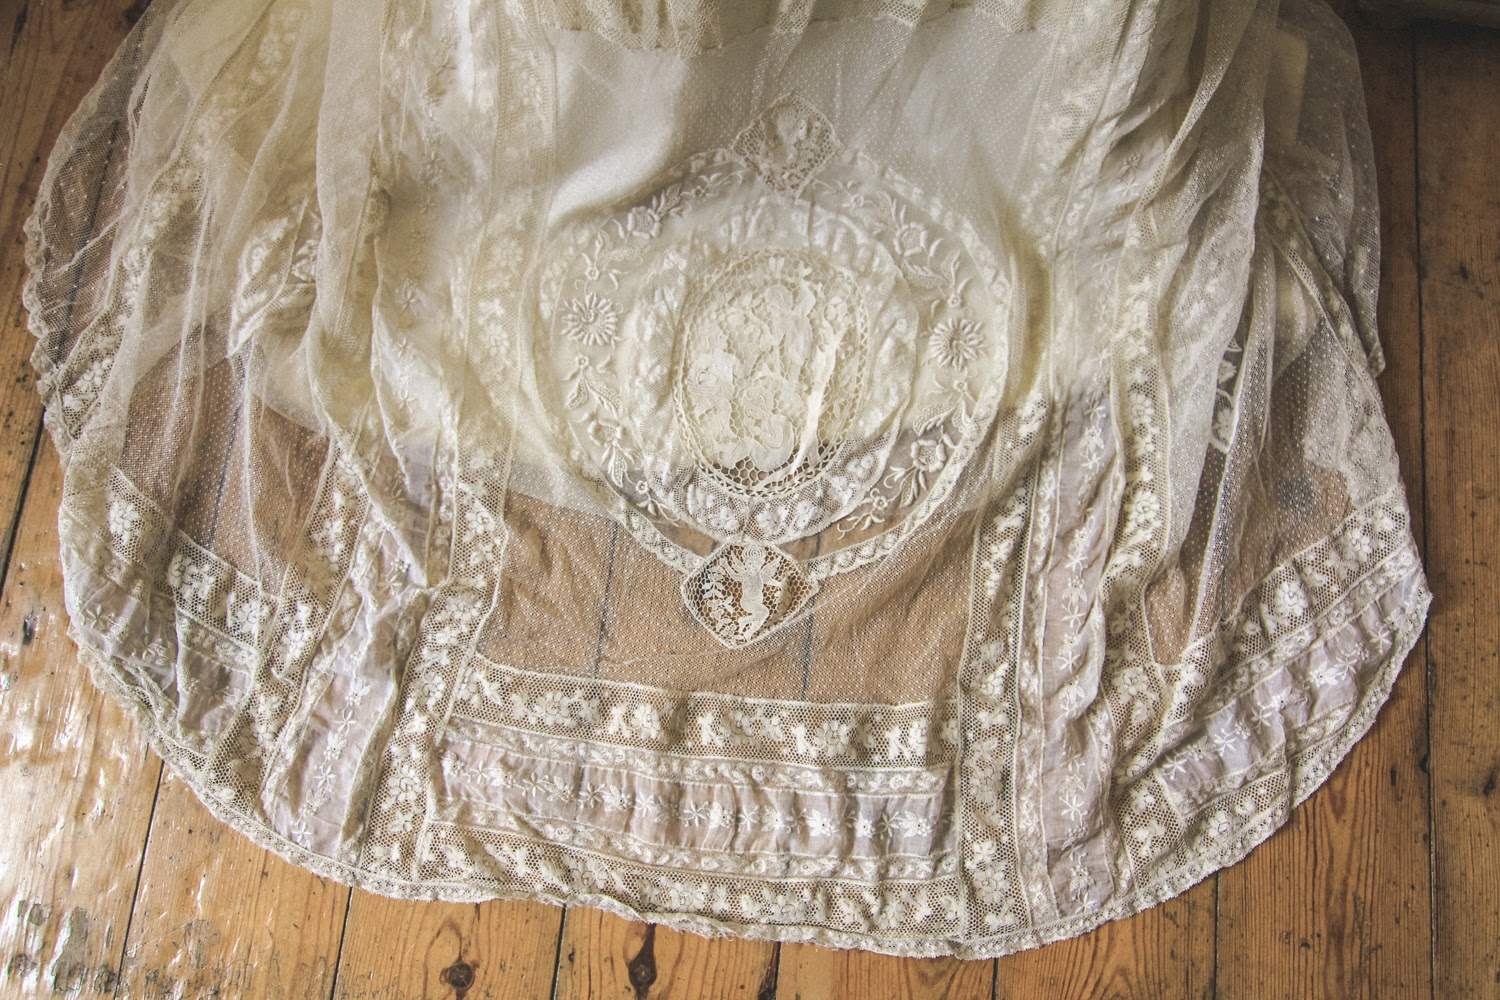 The train of my antique lace wedding dress